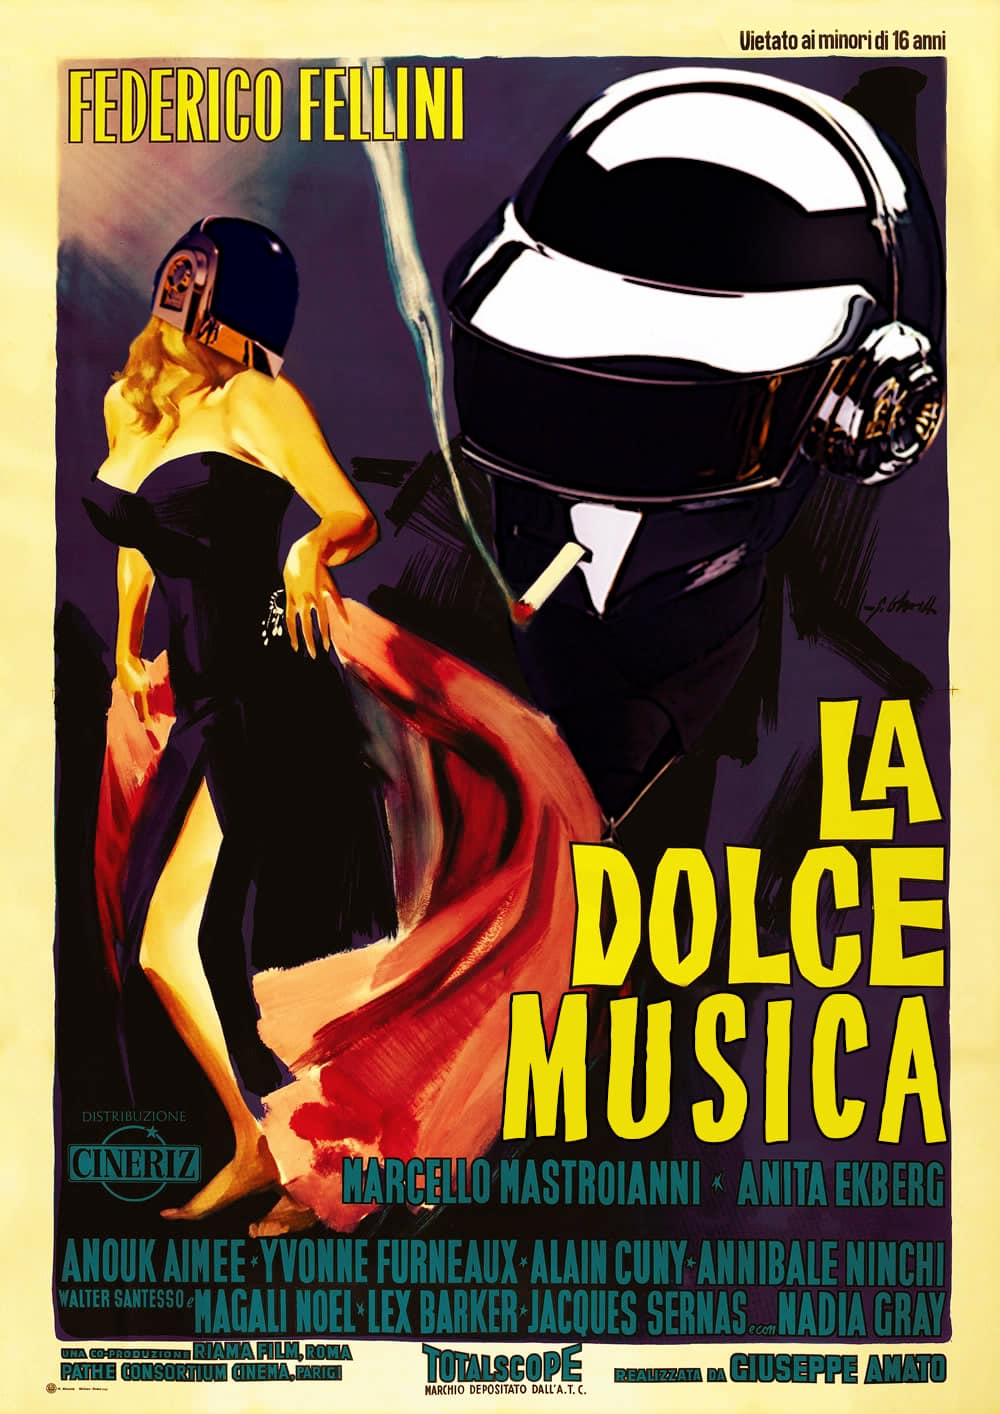 La-Dolce-Musica the rdg daft punk project in epic movies